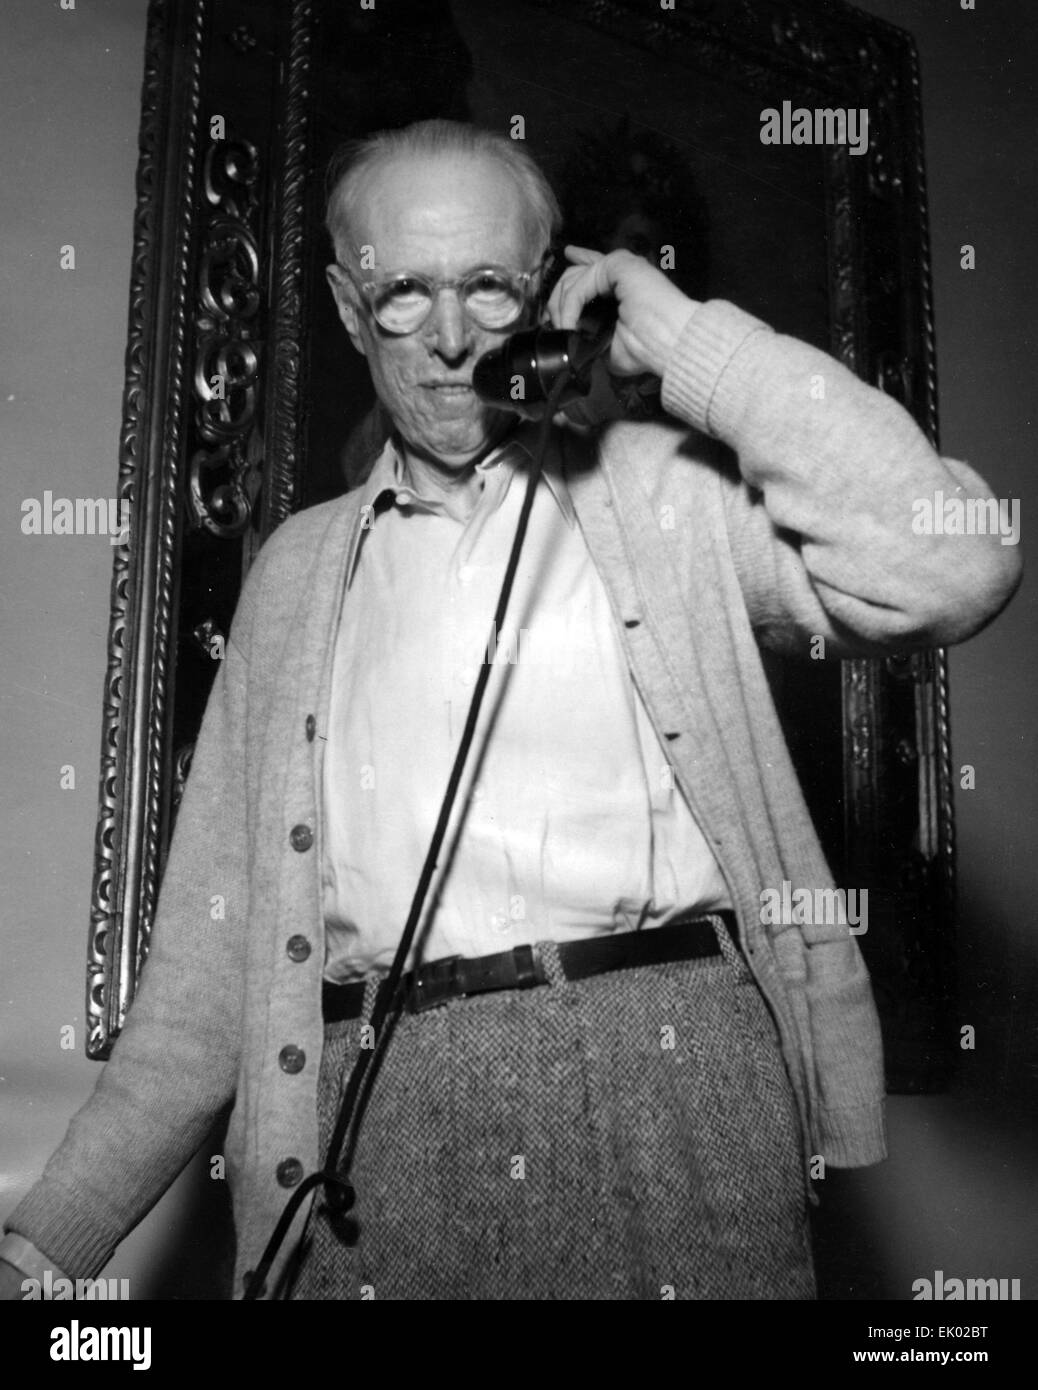 SINCLAIR LEWIS (1885-1951) American novelist and playwright in Venice in 1950. Photo Interphoto - Stock Image